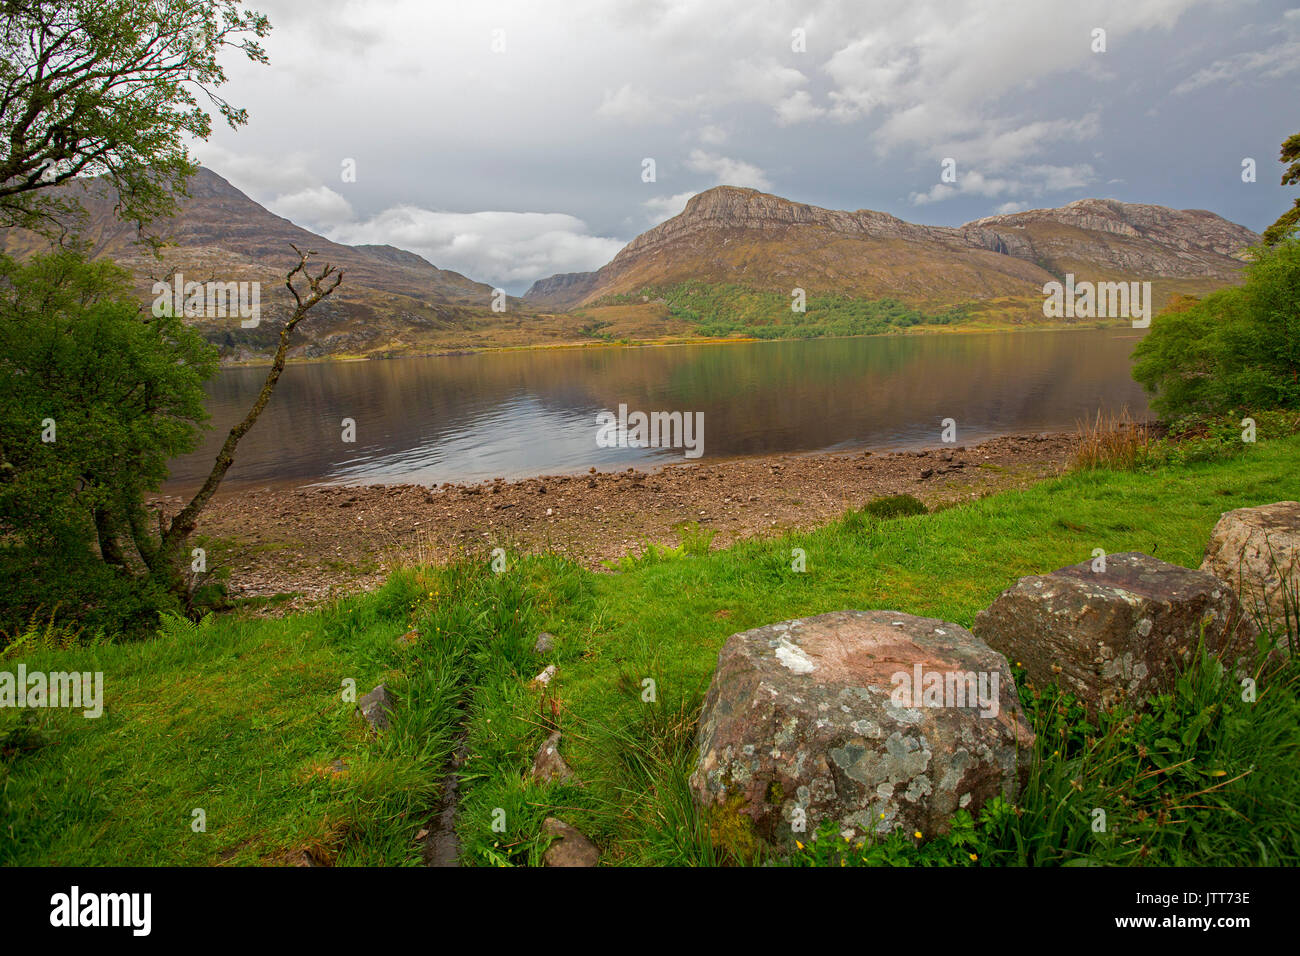 Landscape dominated by Loch Maree and mountains in Scotland - Stock Image